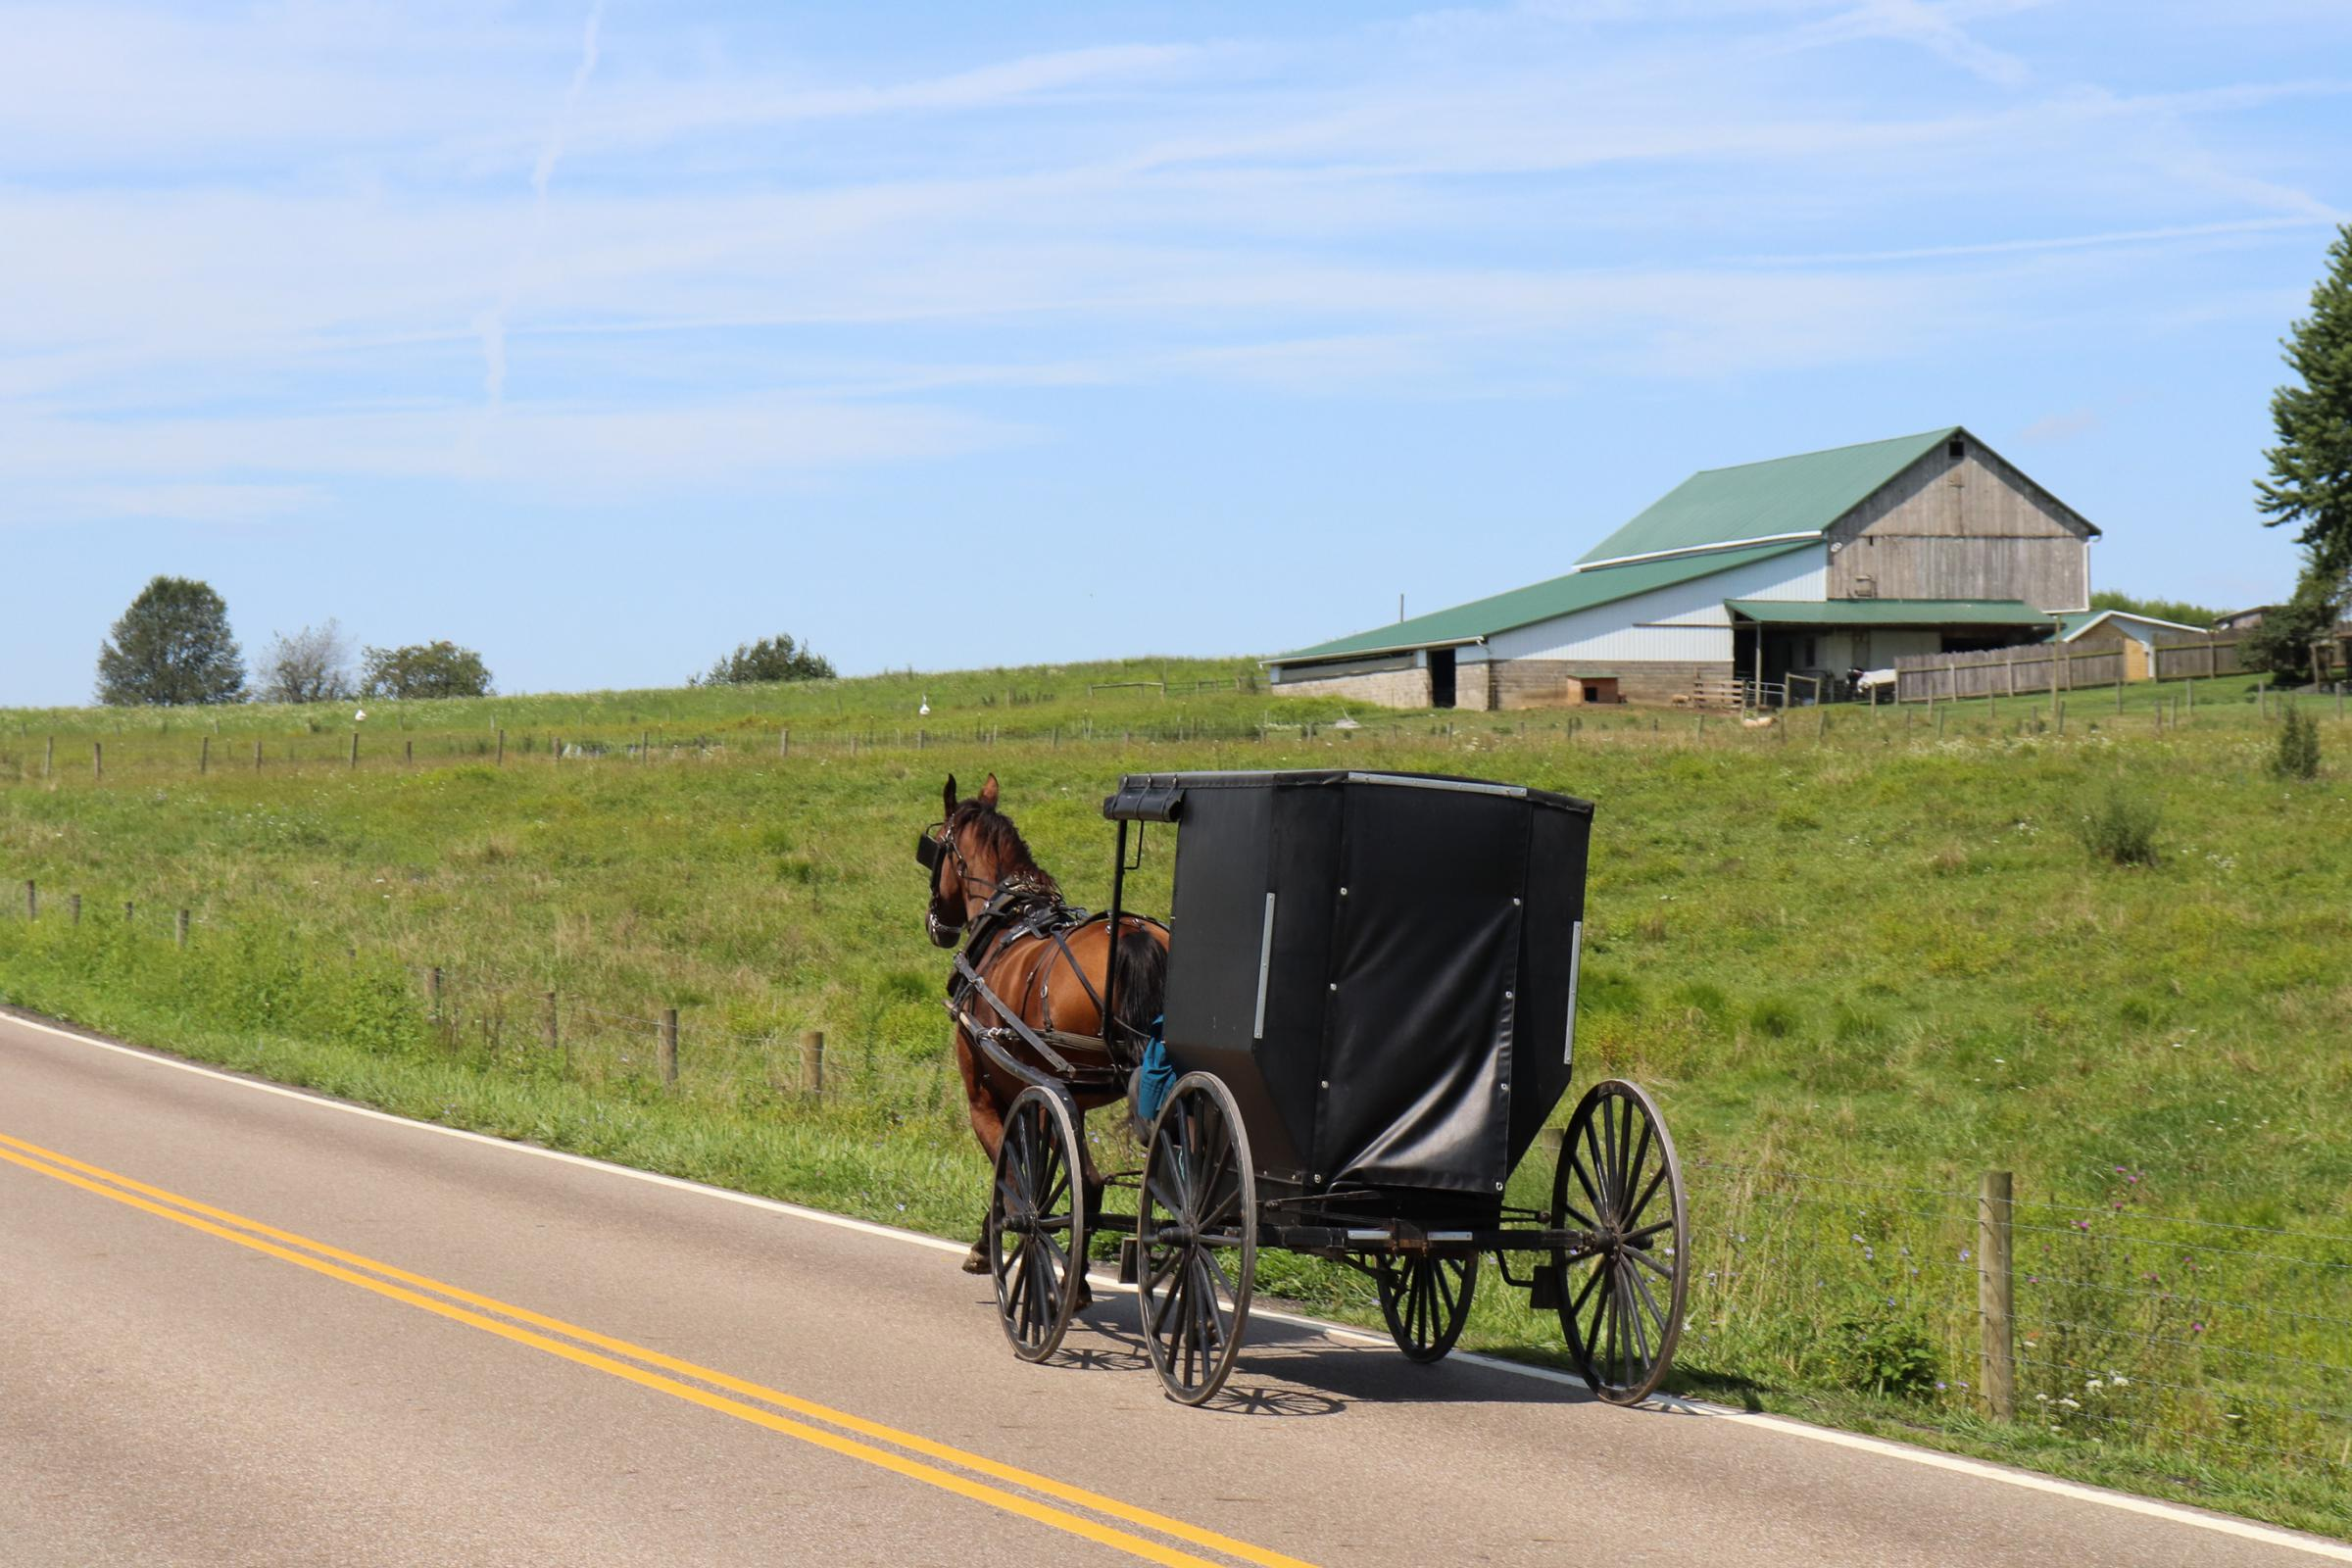 Caption: A horse and buggy drive through Holmes Co., the heart of Ohio's Amish community., Credit: PAIGE PFLEGER / SIDE EFFECTS PUBLIC MEDIA